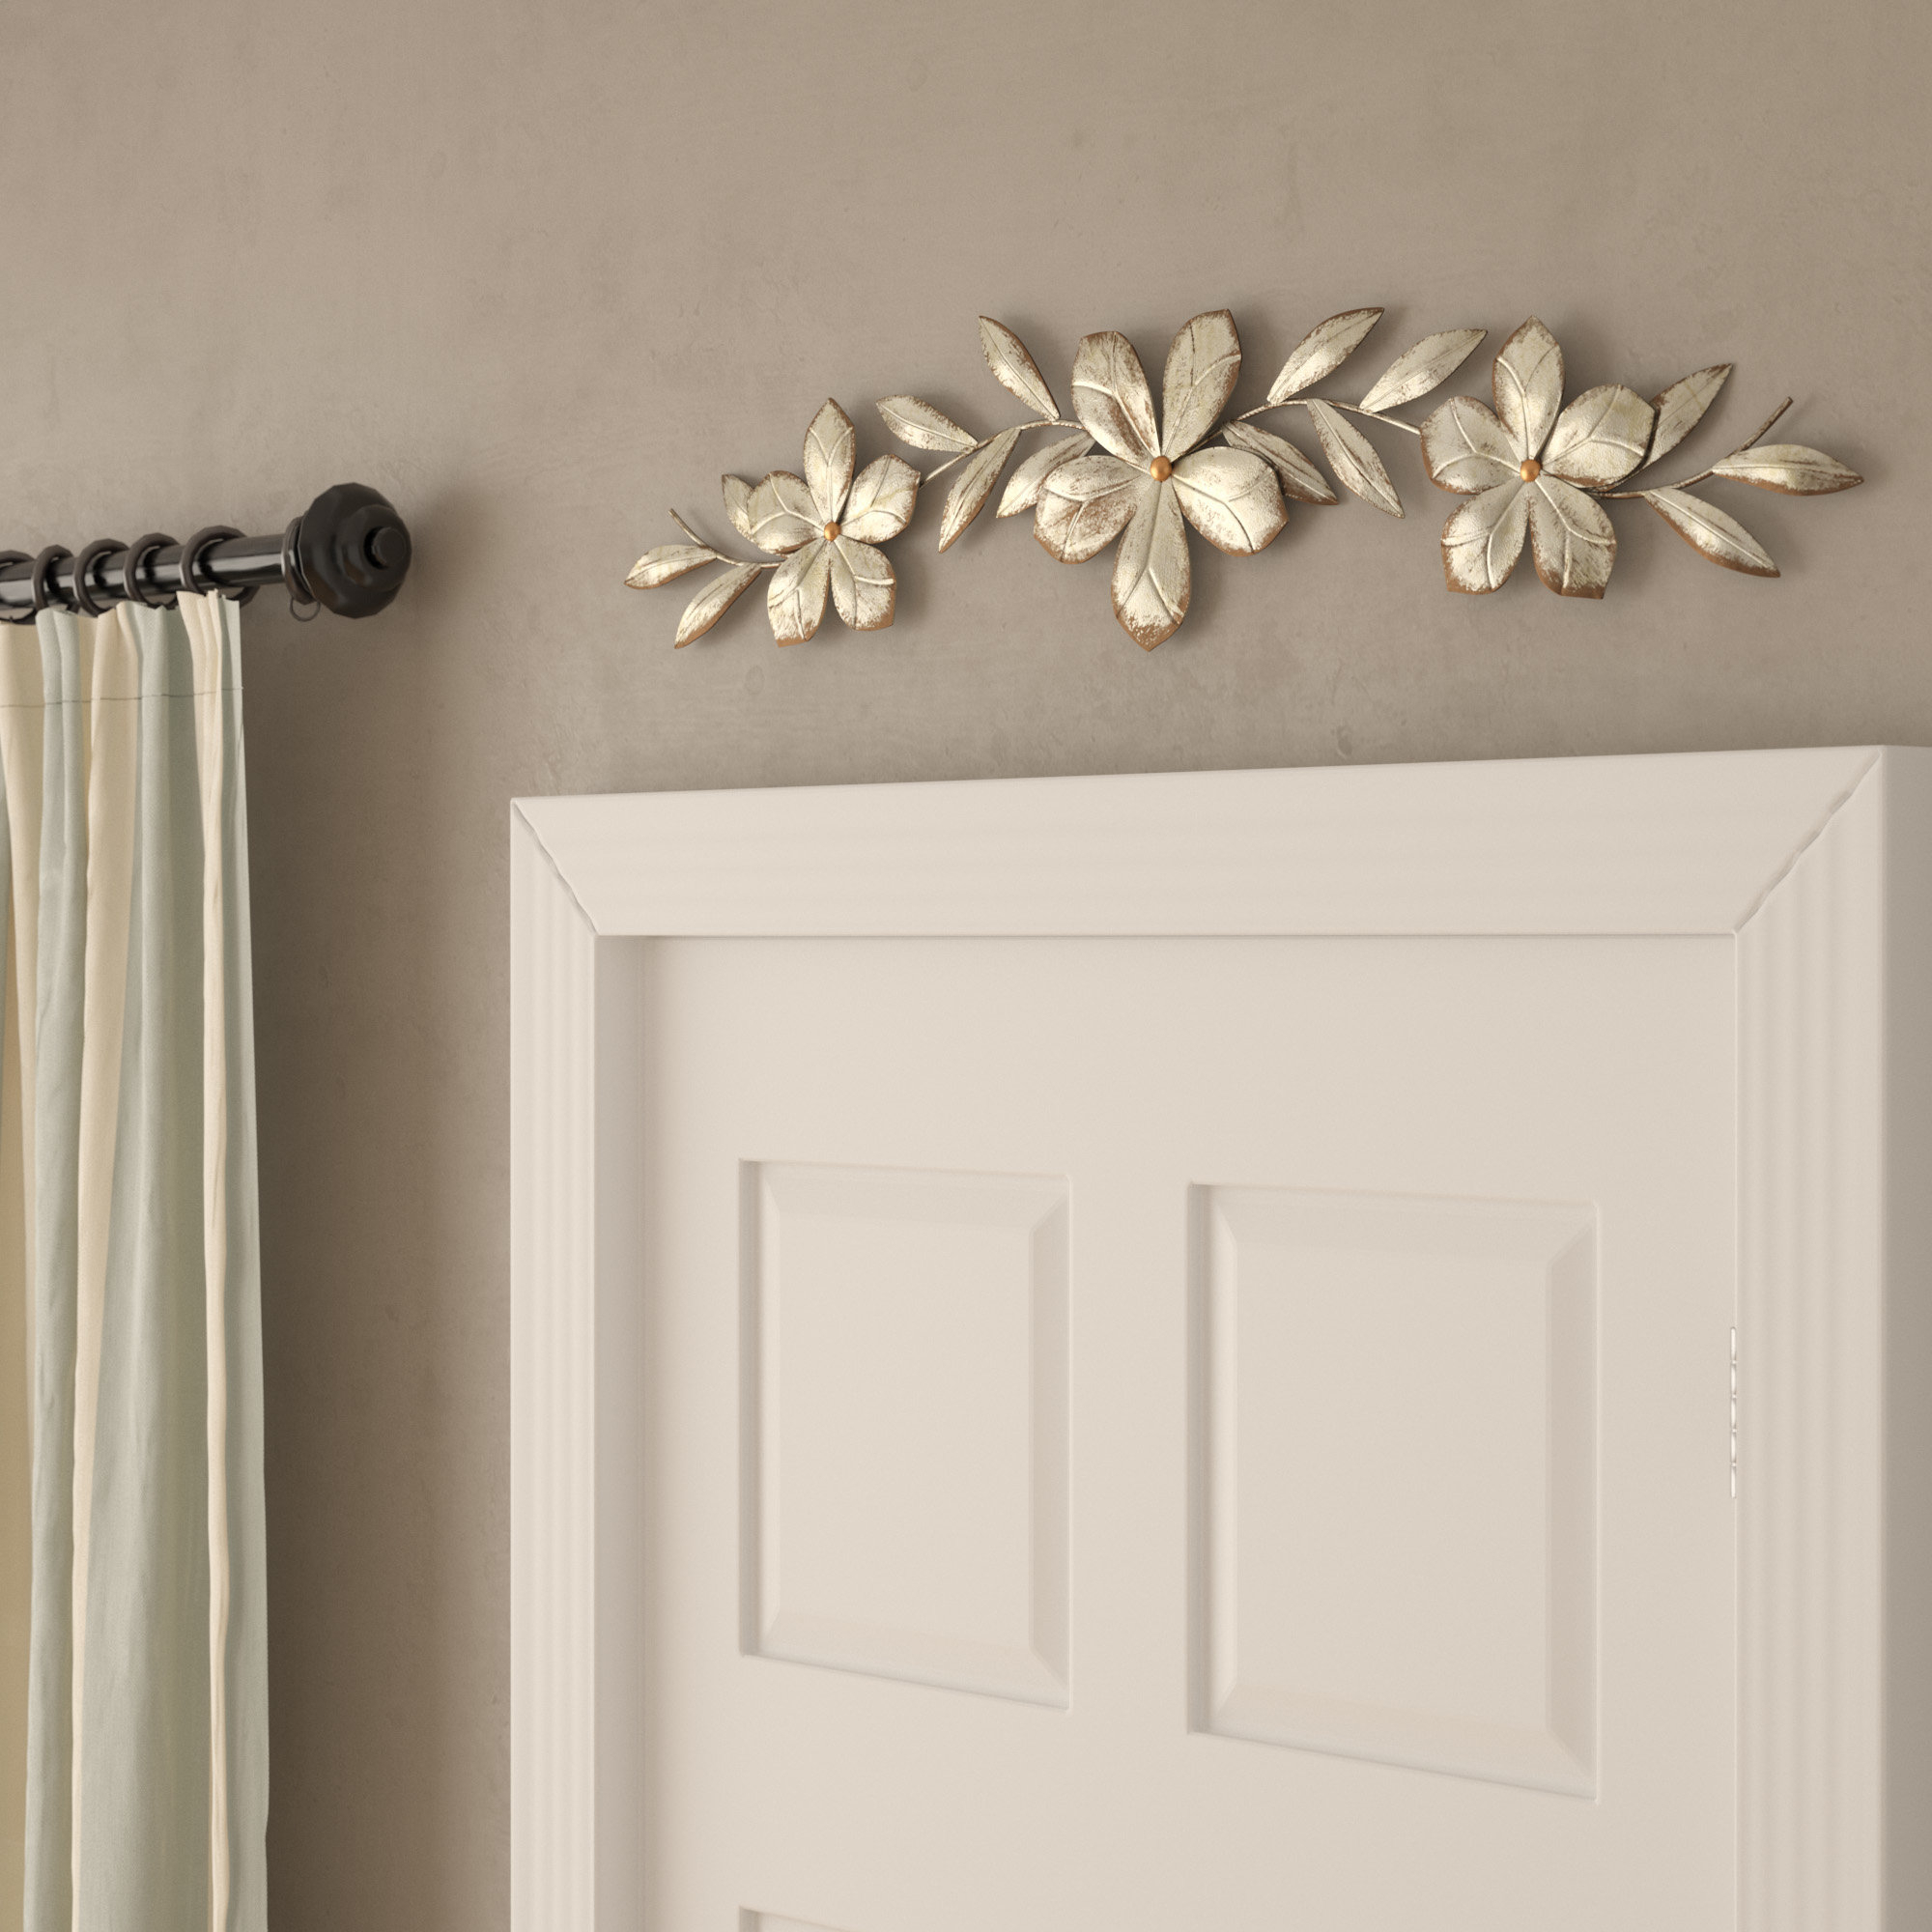 Bay Isle Home Flower Over The Door Wall Décor & Reviews With Regard To Brushed Pearl Over The Door Wall Decor (View 6 of 30)